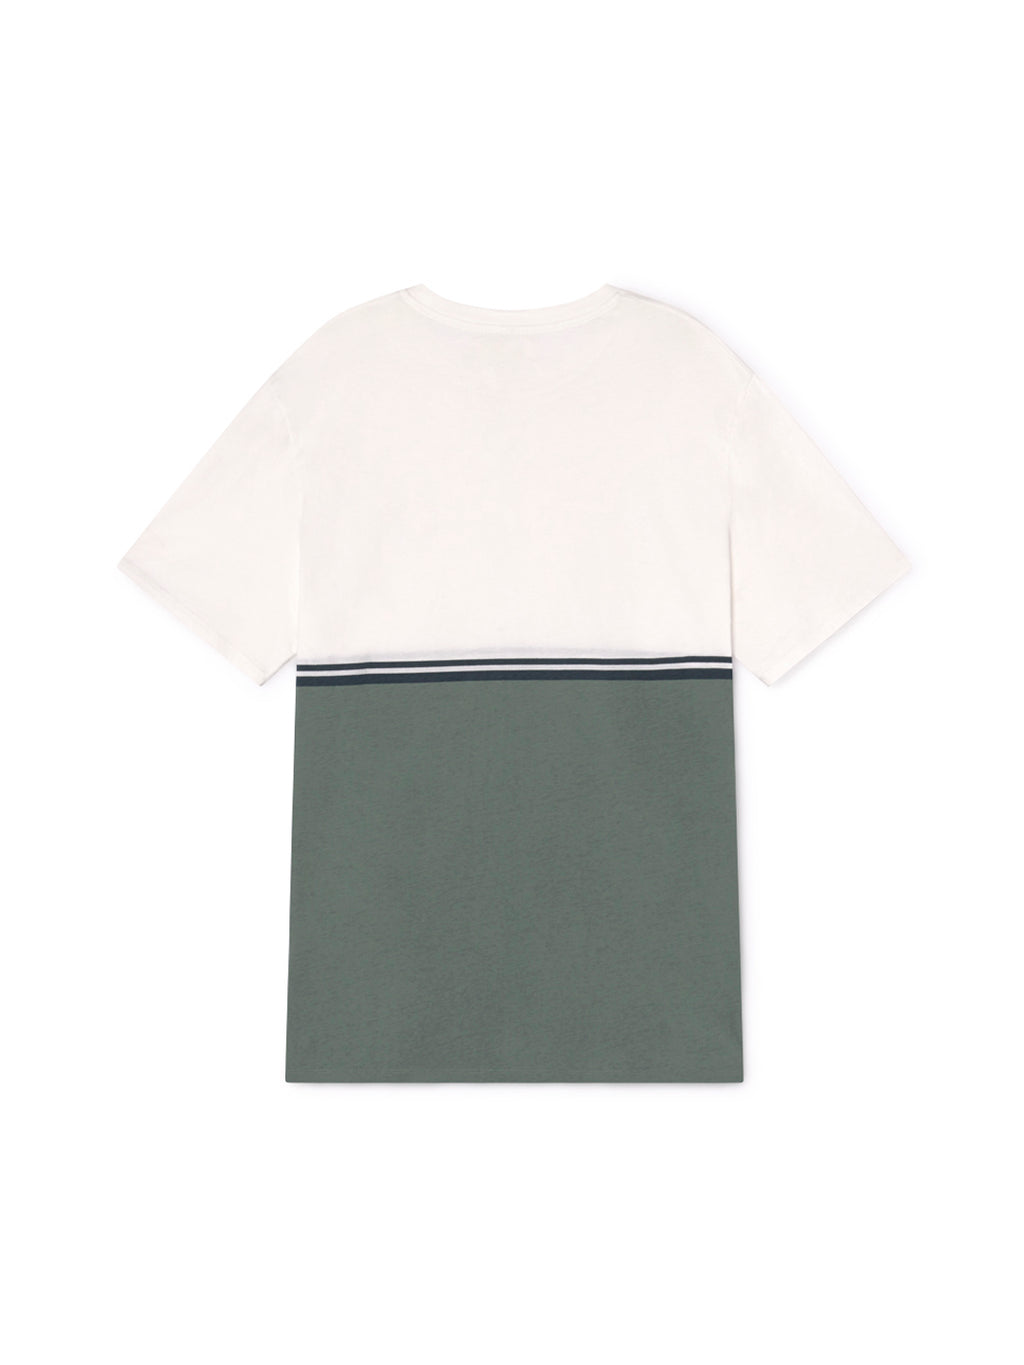 TWOTHIRDS Male Tee: Williams - Ecrue / Dusty Green back